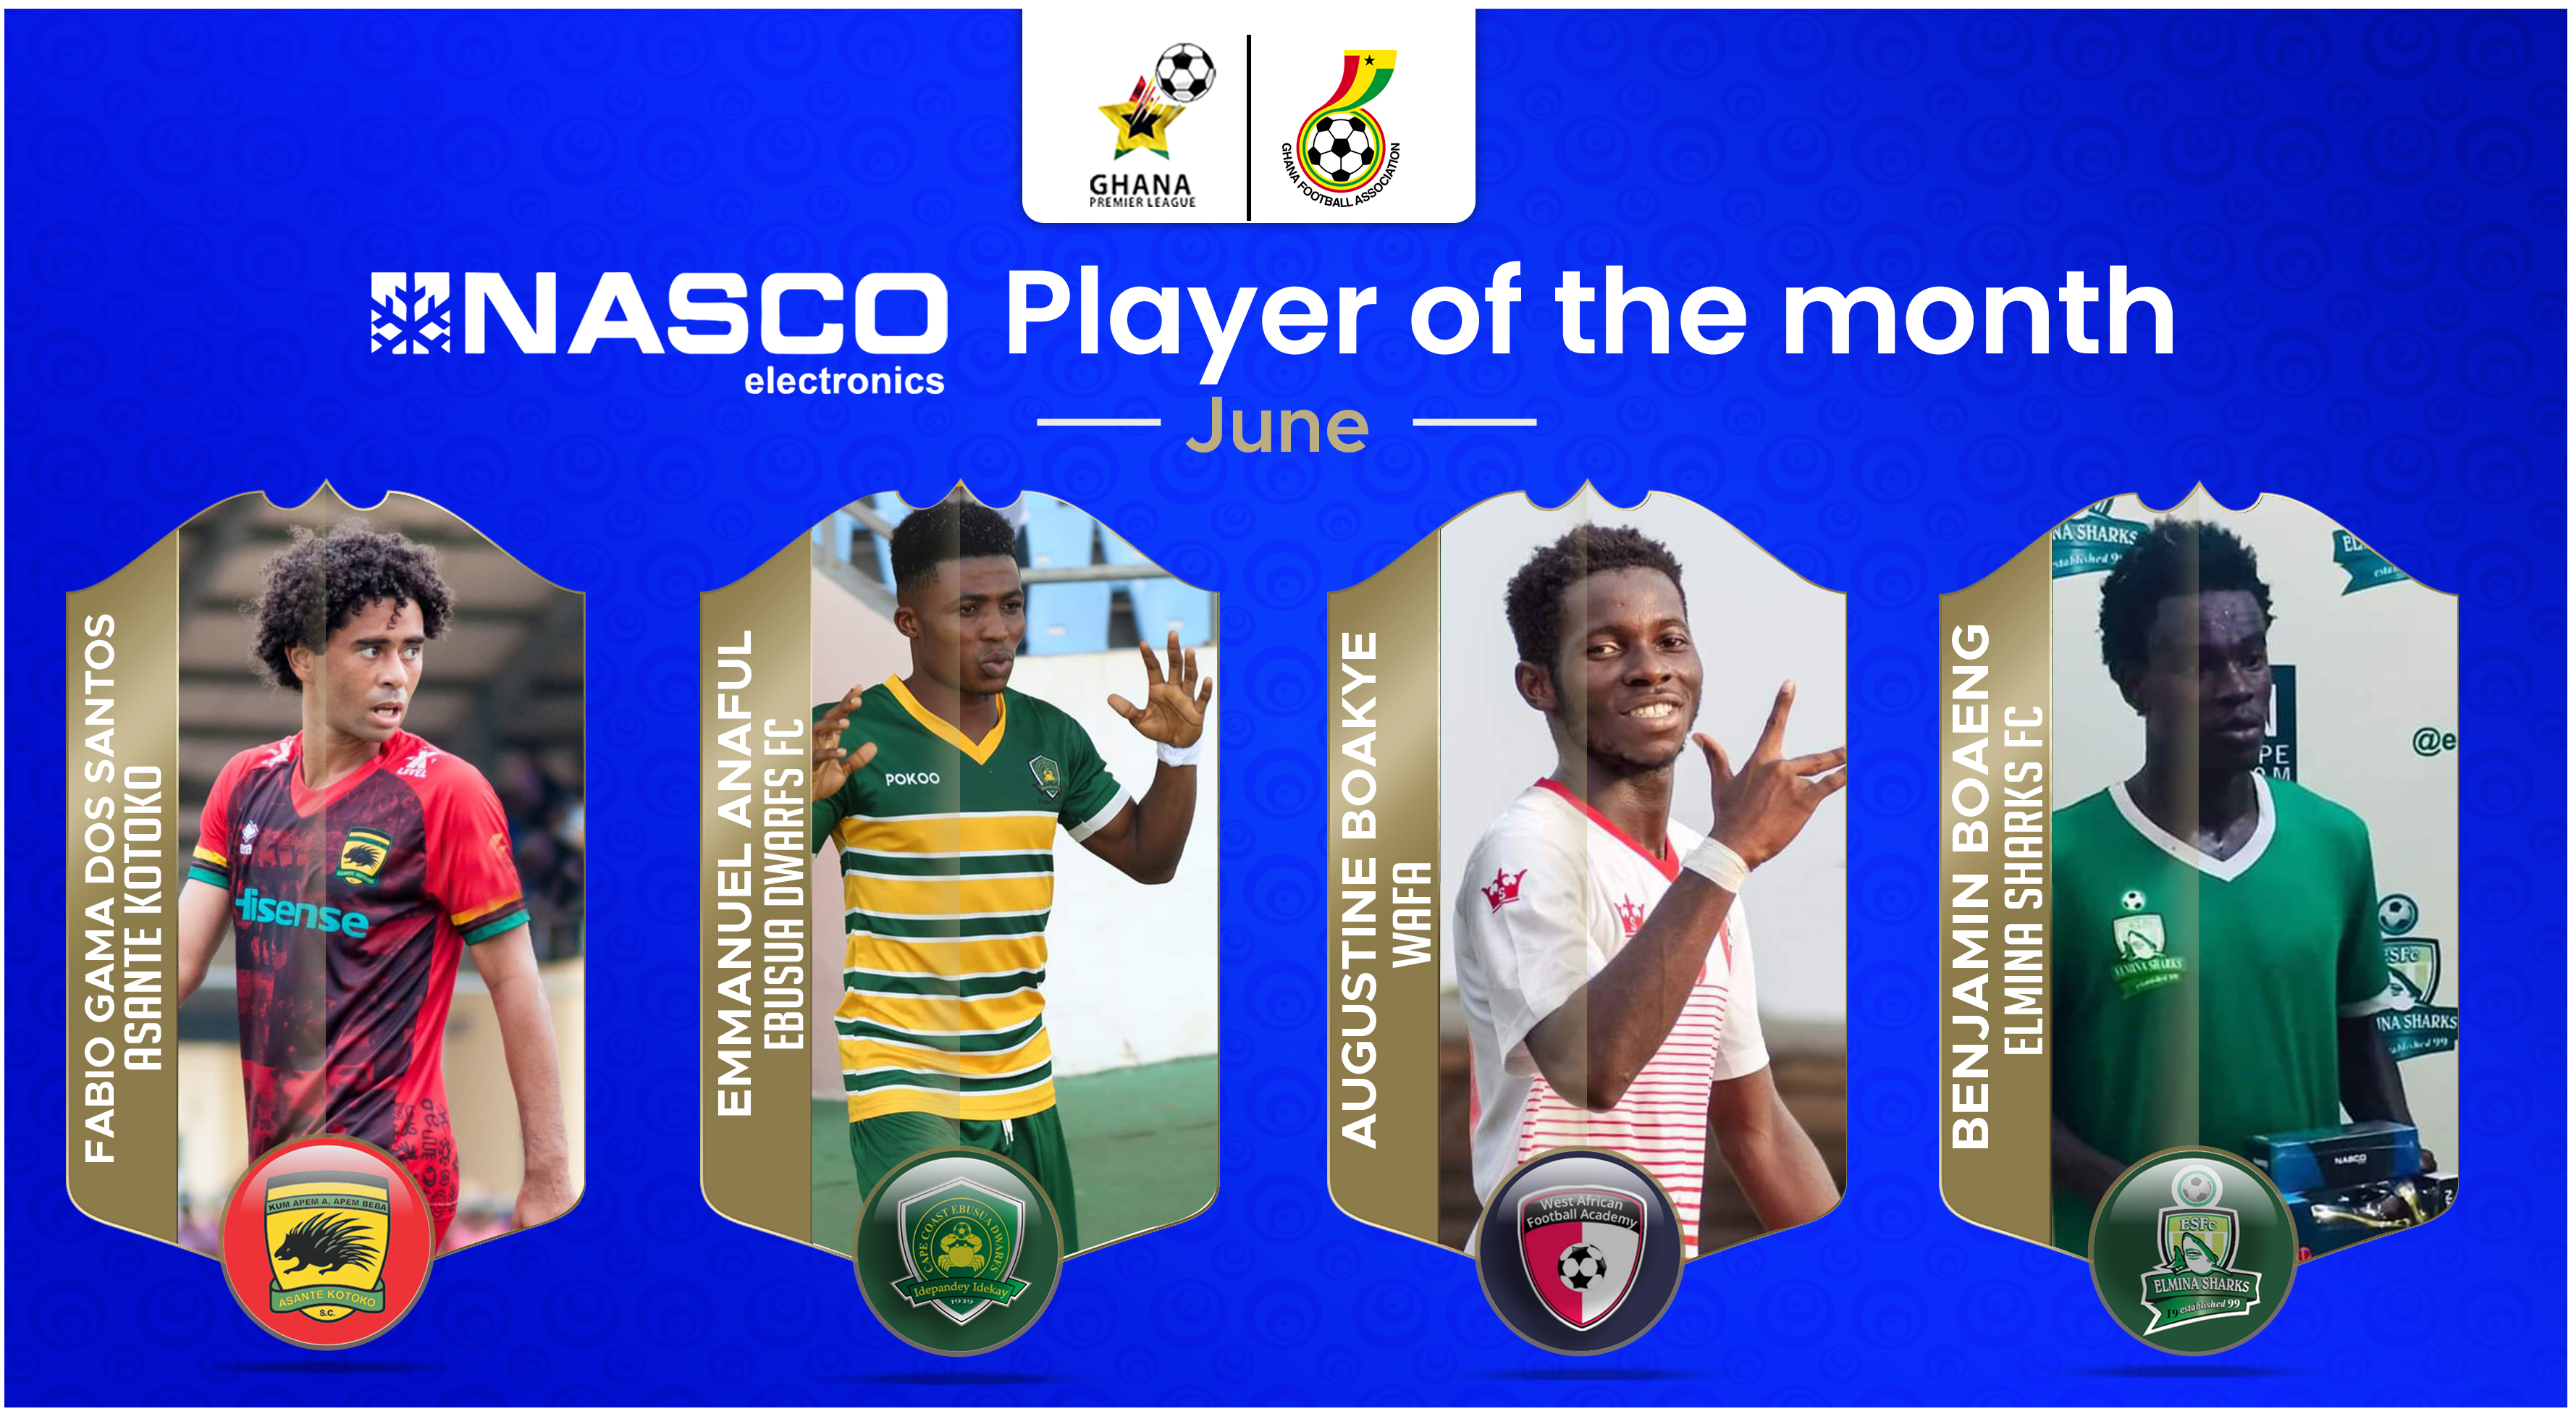 Boakye, Gama, Anaful and Boateng earn NASCO player of the month nomination